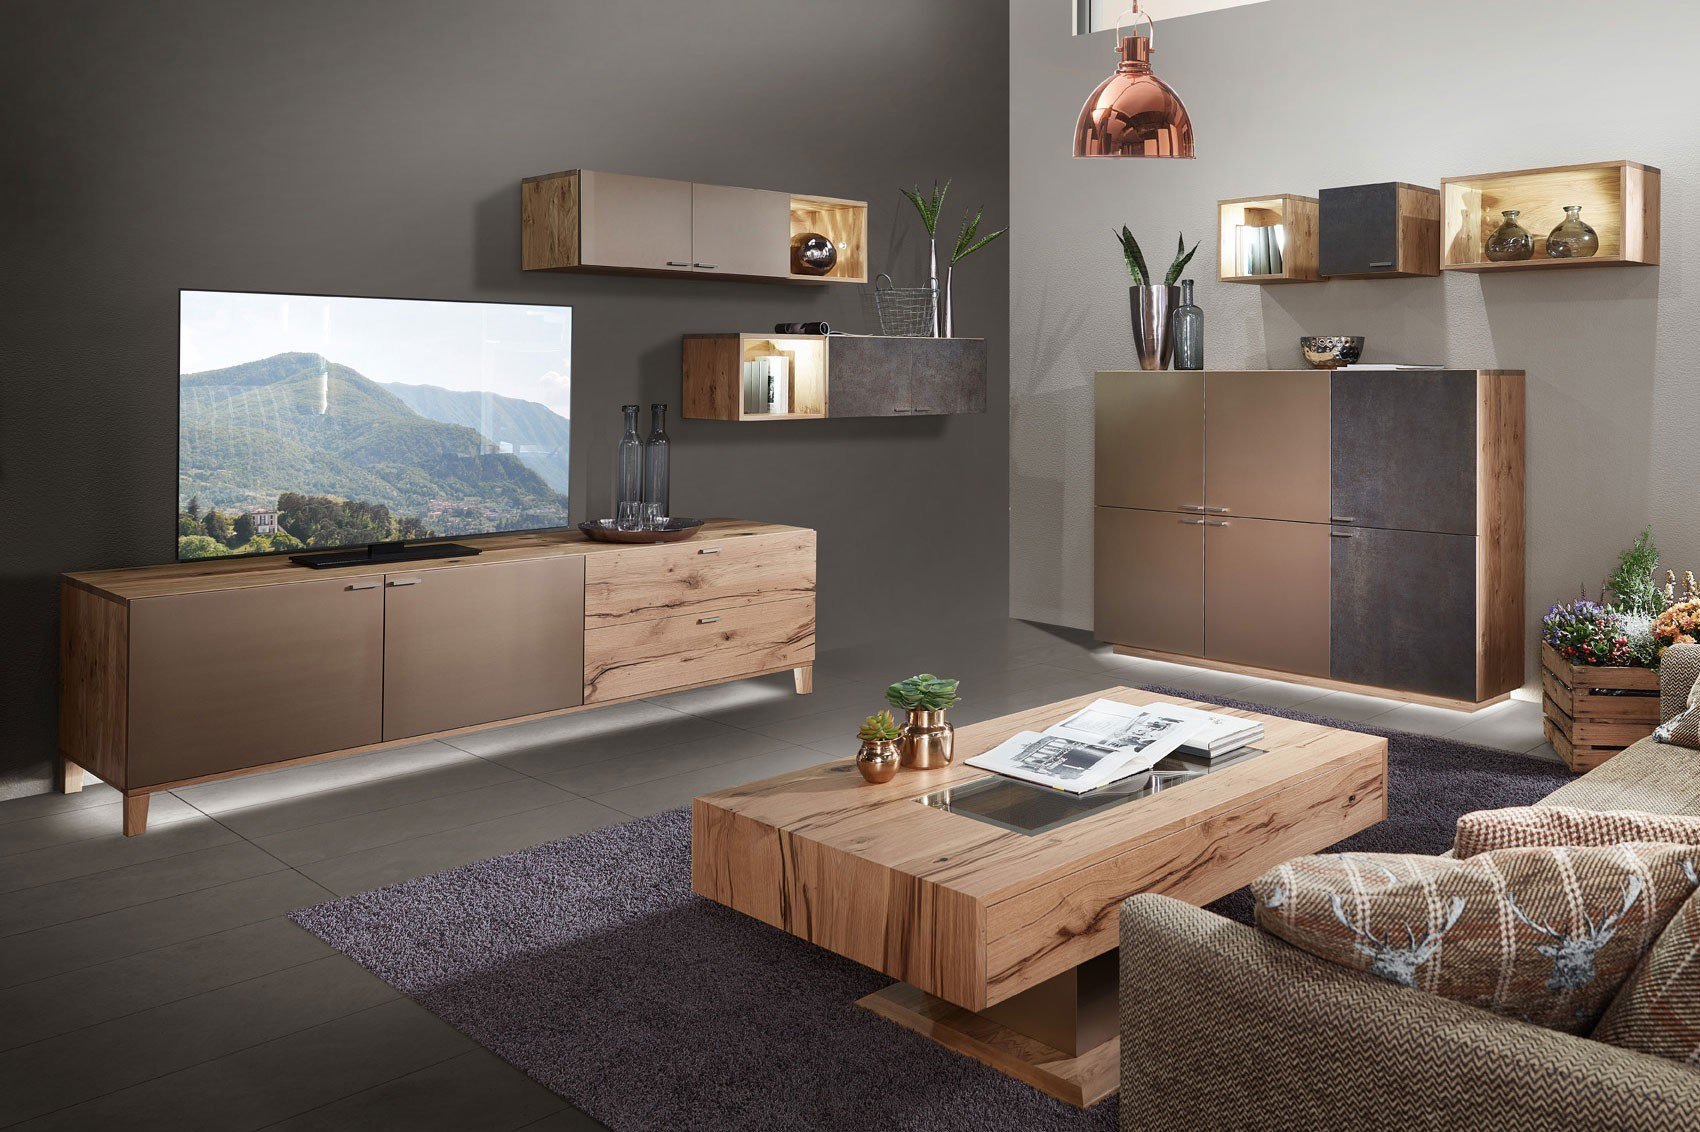 schr der m bel wohnwand kitzalm living k009 keramik lack m bel letz ihr online shop. Black Bedroom Furniture Sets. Home Design Ideas